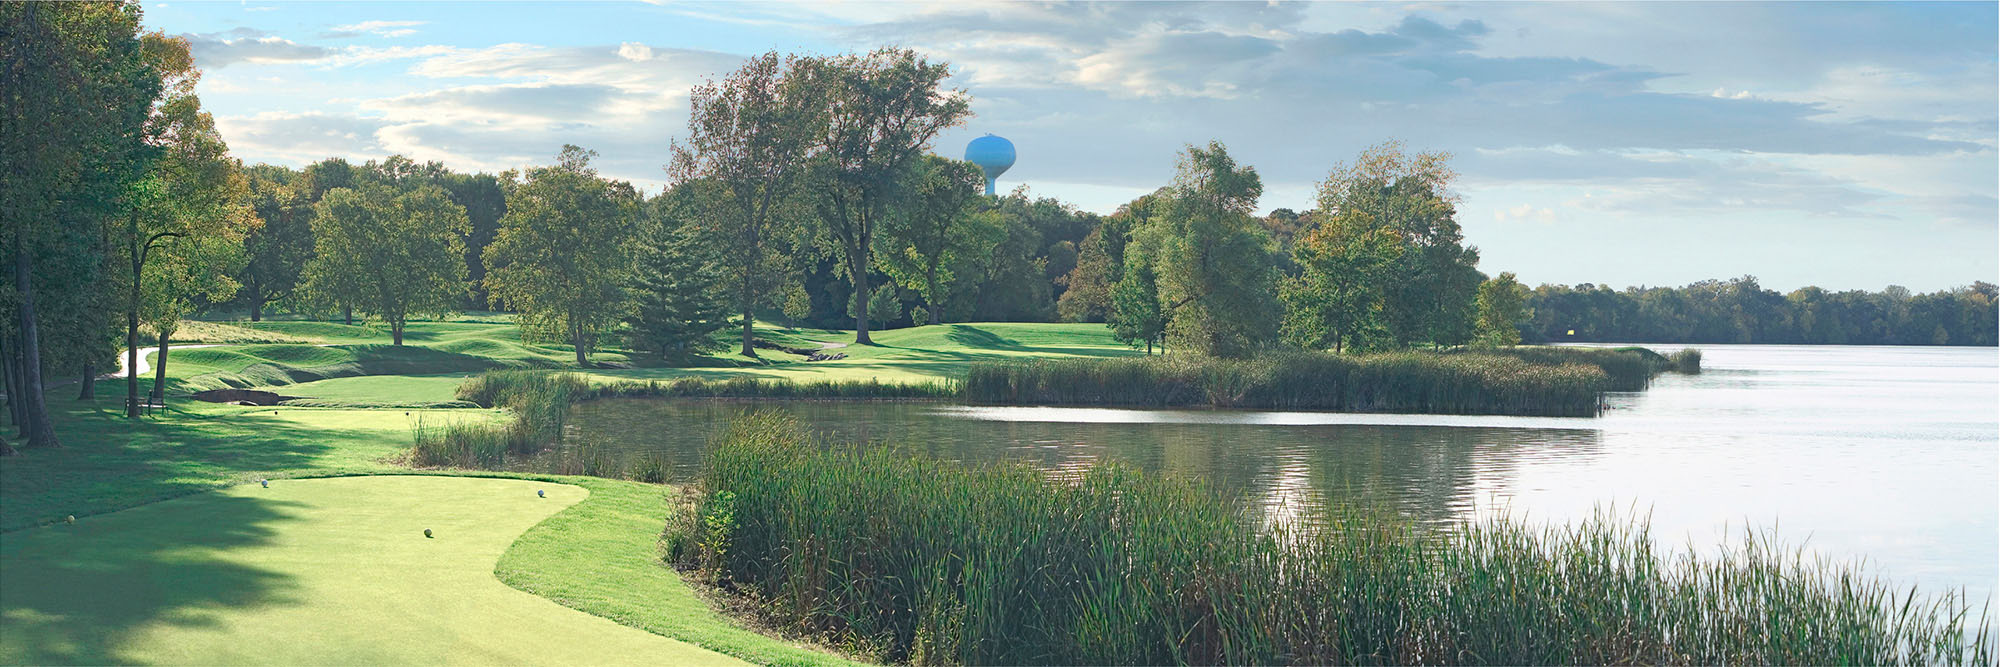 Golf Course Image - Hazeltine National Golf Club No. 16